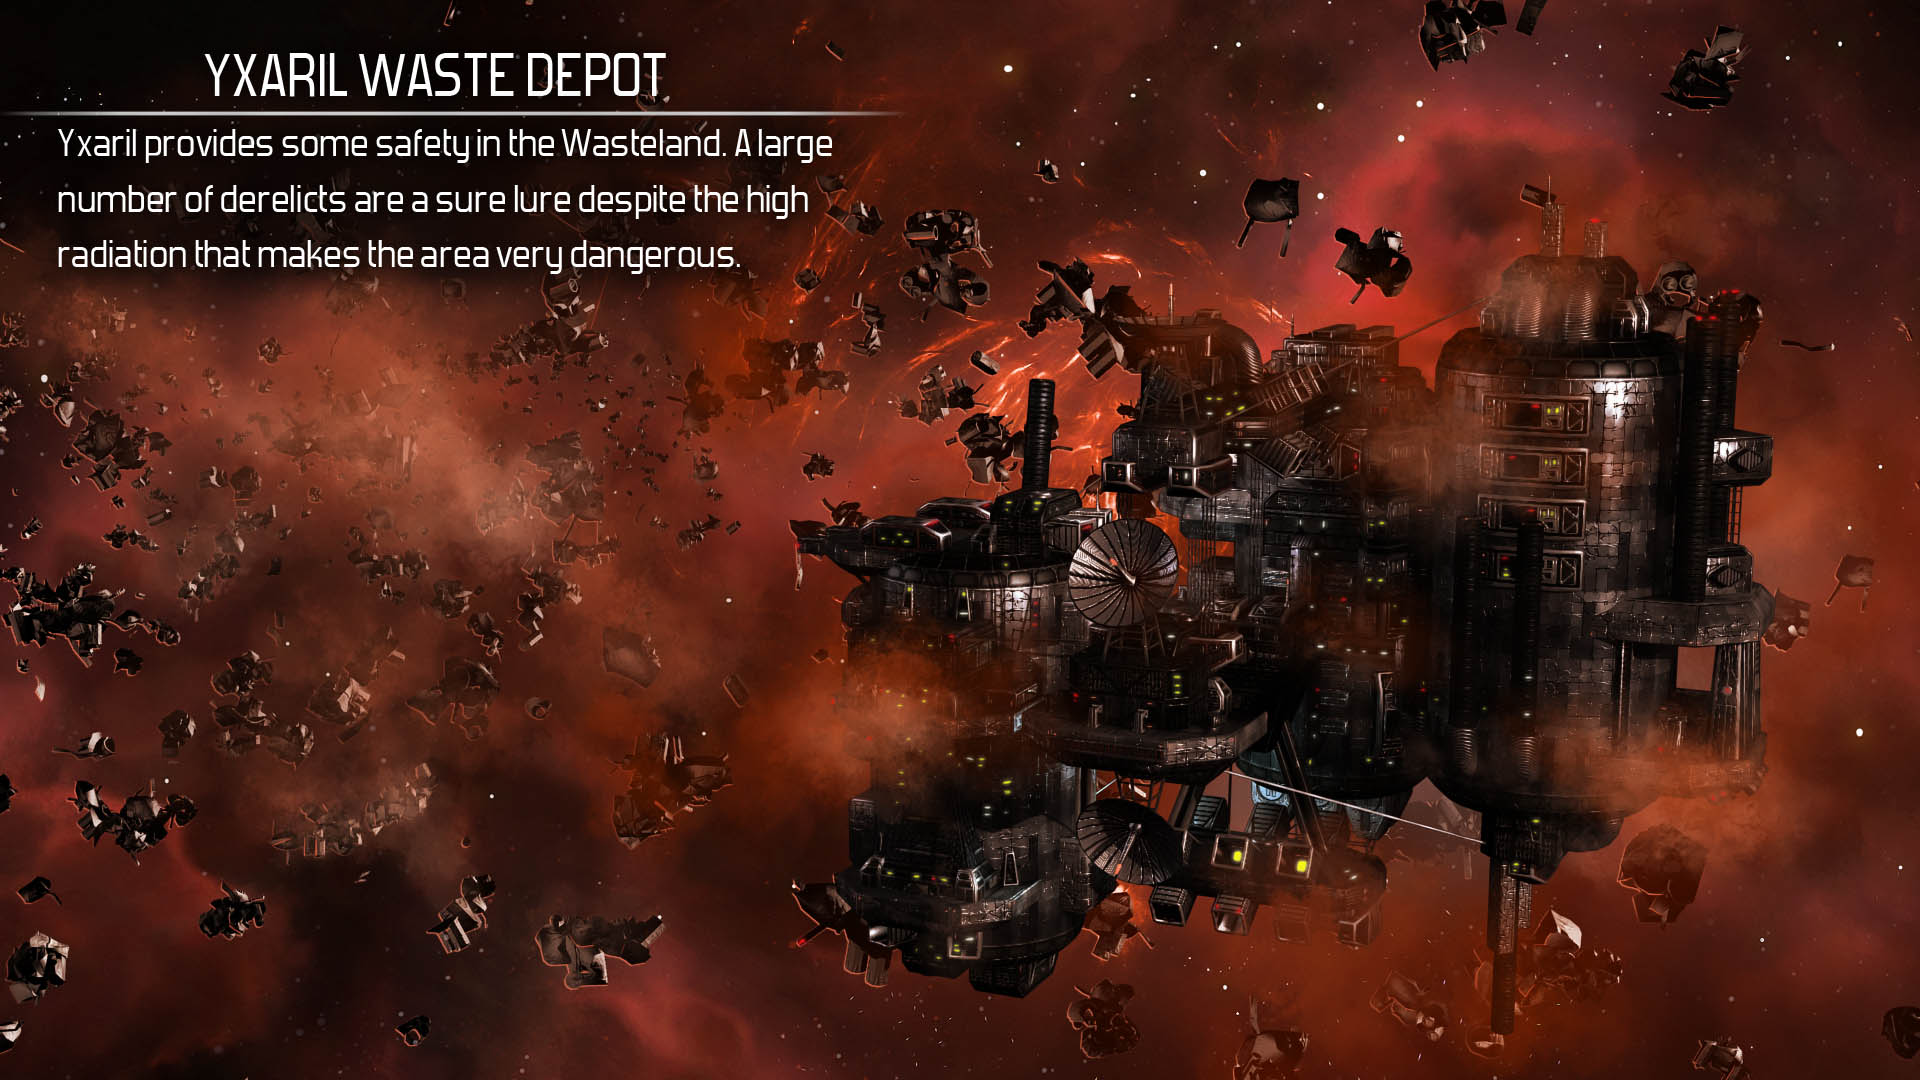 Steam card exchange showcase starpoint gemini 2 card 8 of 8artwork yxaril waste depot malvernweather Image collections